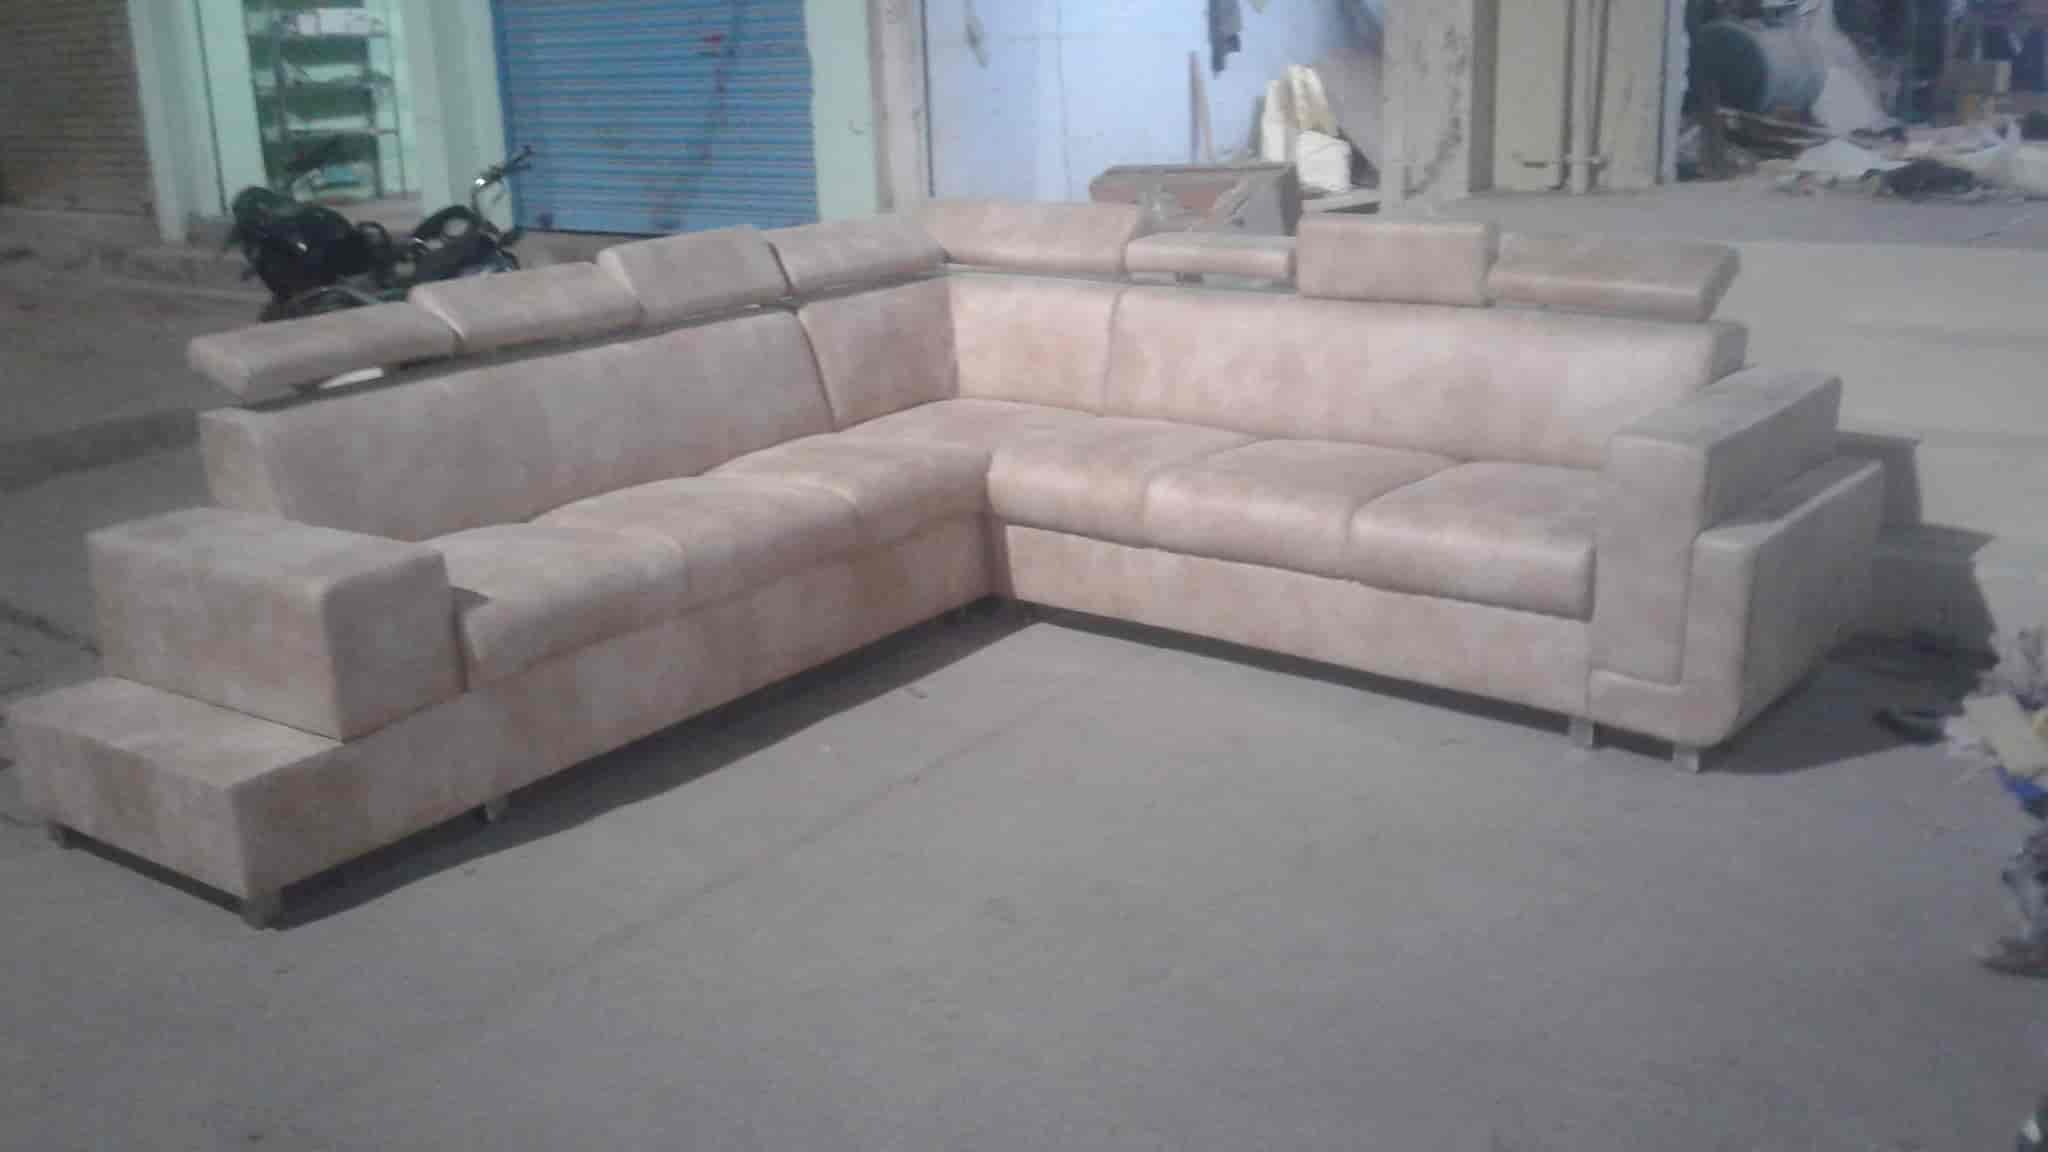 Sofa Set Repair In Hyderabad Furniture Repair Services In Hyderabad Furniture